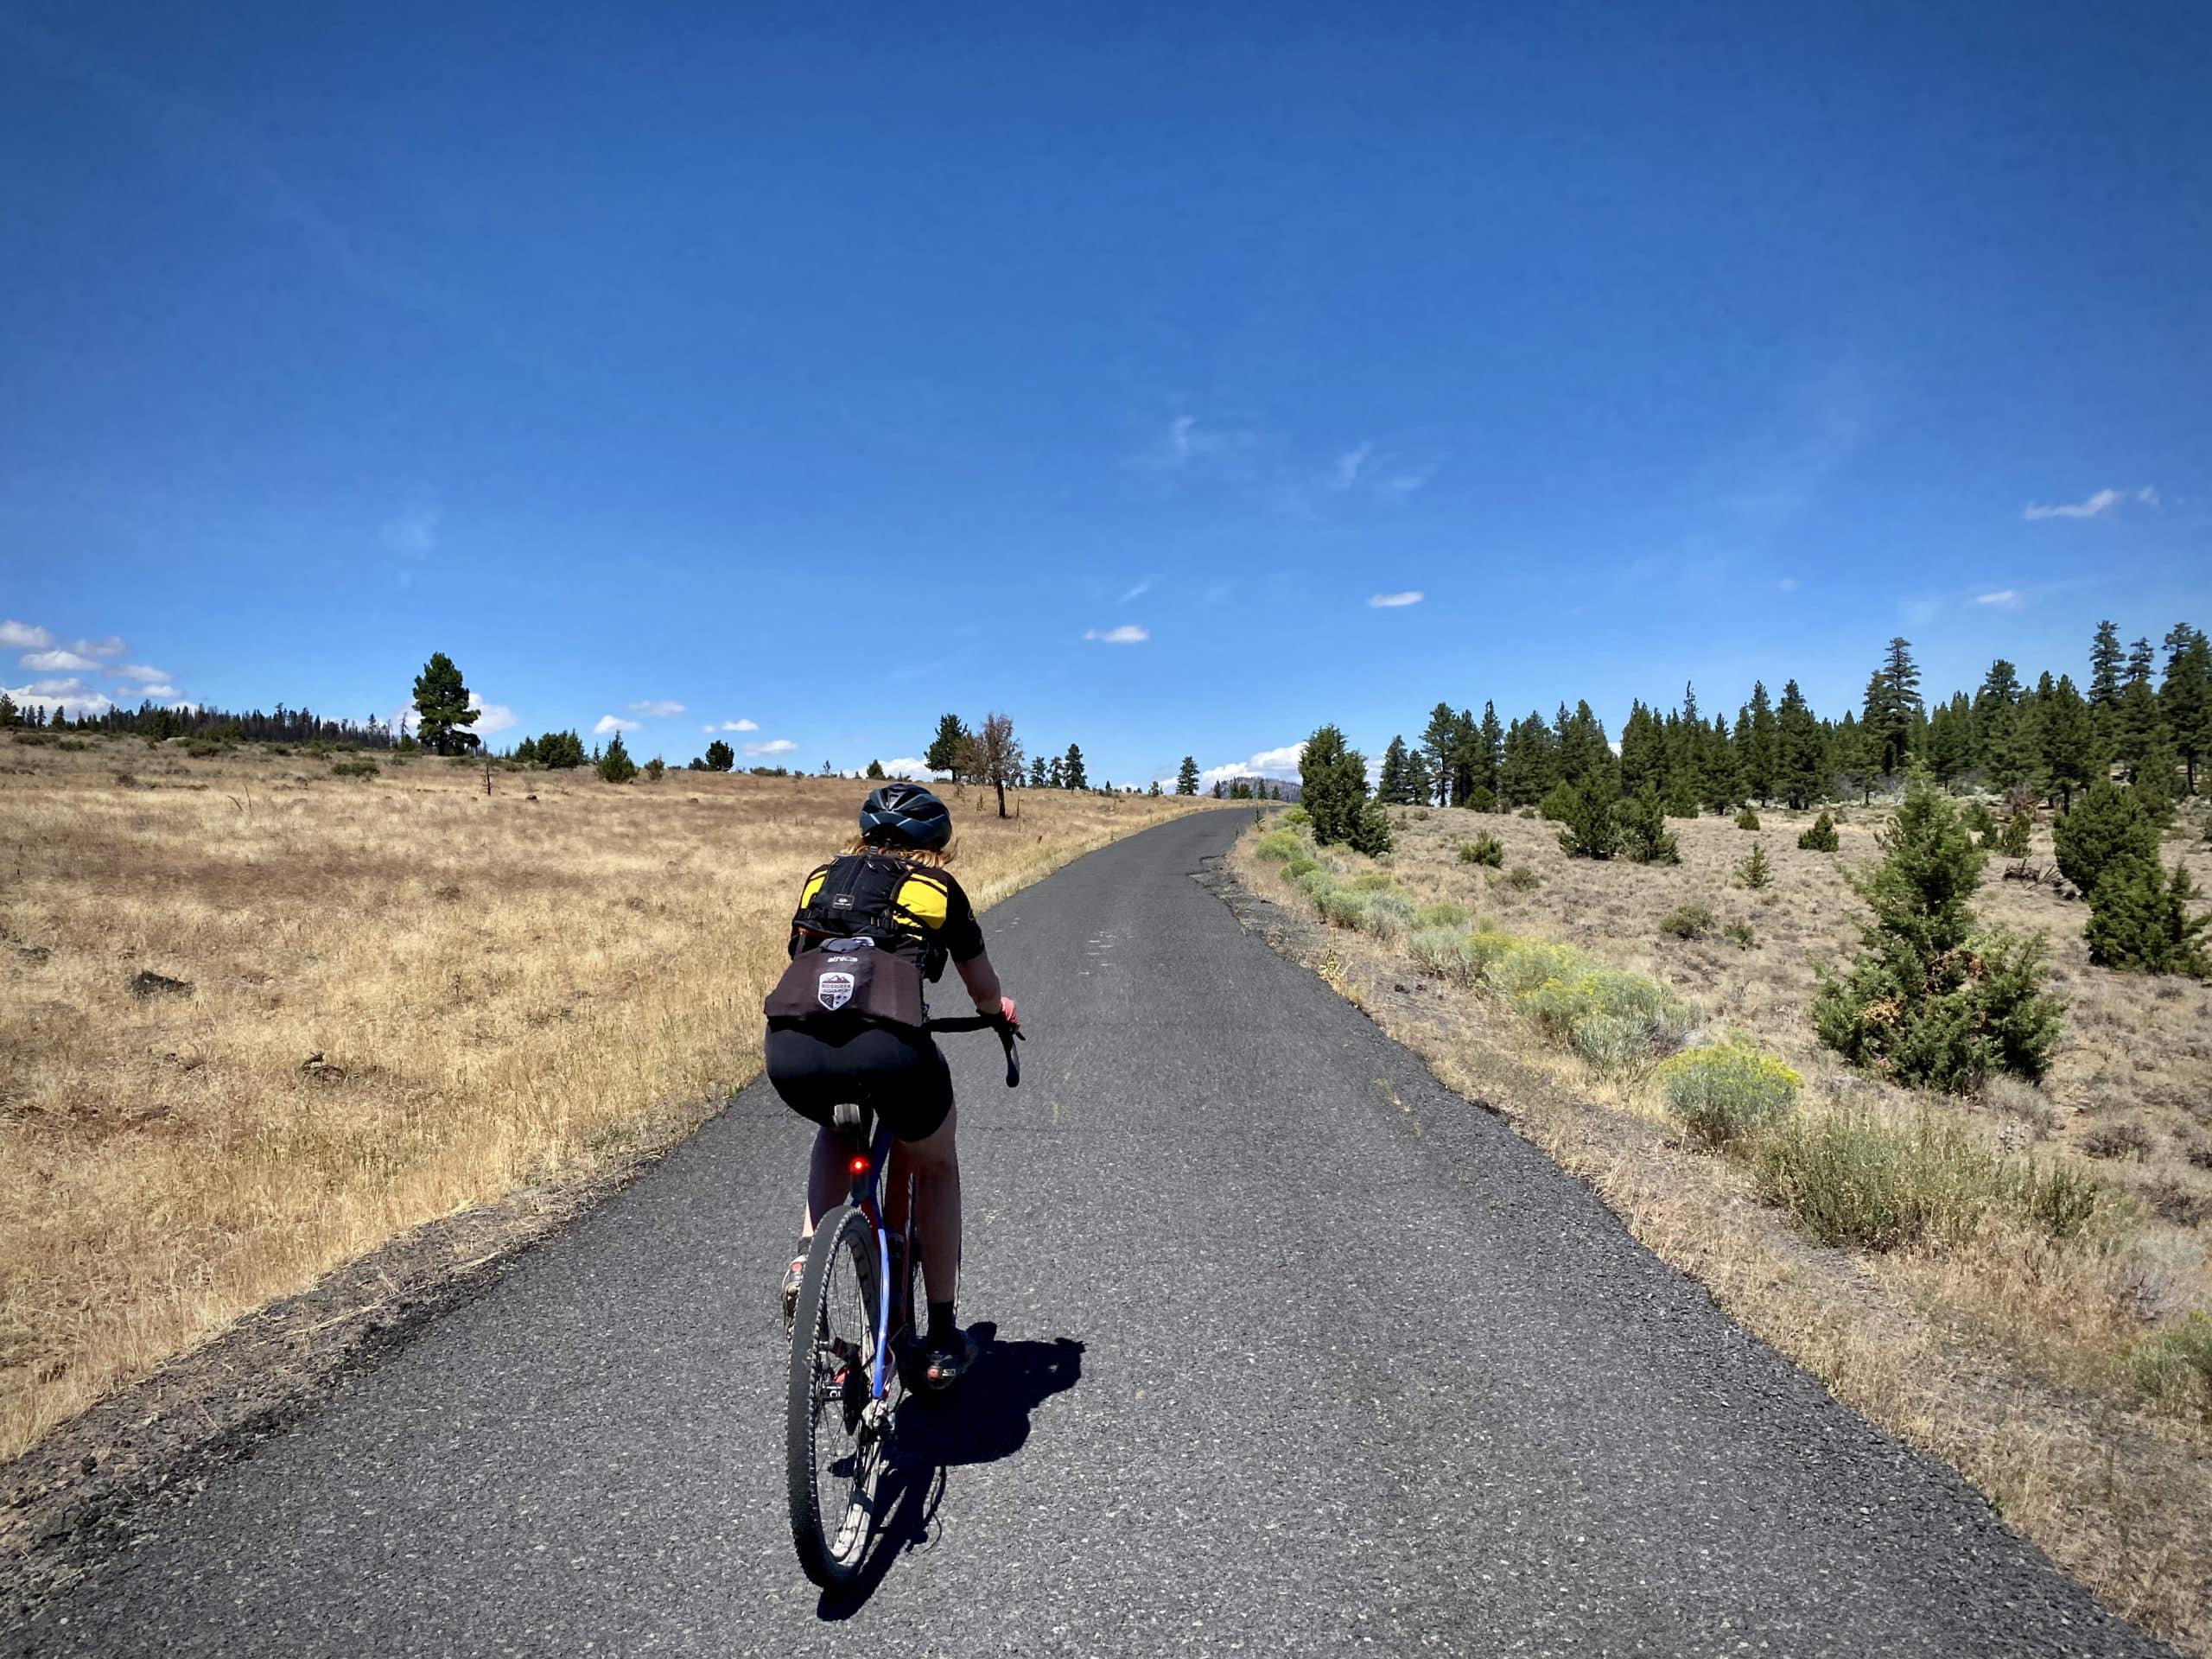 Cyclist on paved road NF 33 near Paisley, Oregon.